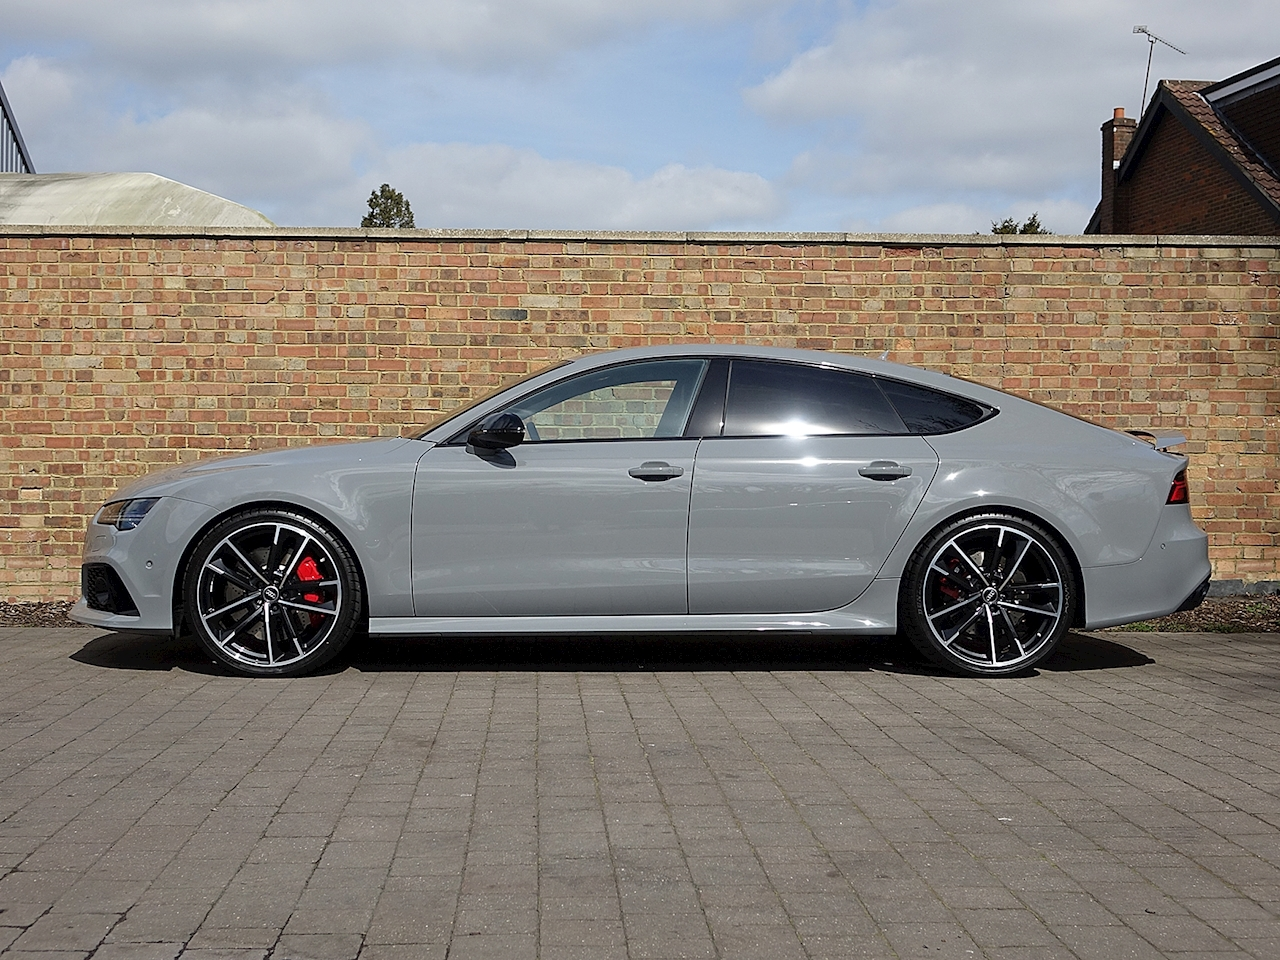 2016 used audi a7 rs7 performance sportback tfsi quattro nardo grey. Black Bedroom Furniture Sets. Home Design Ideas